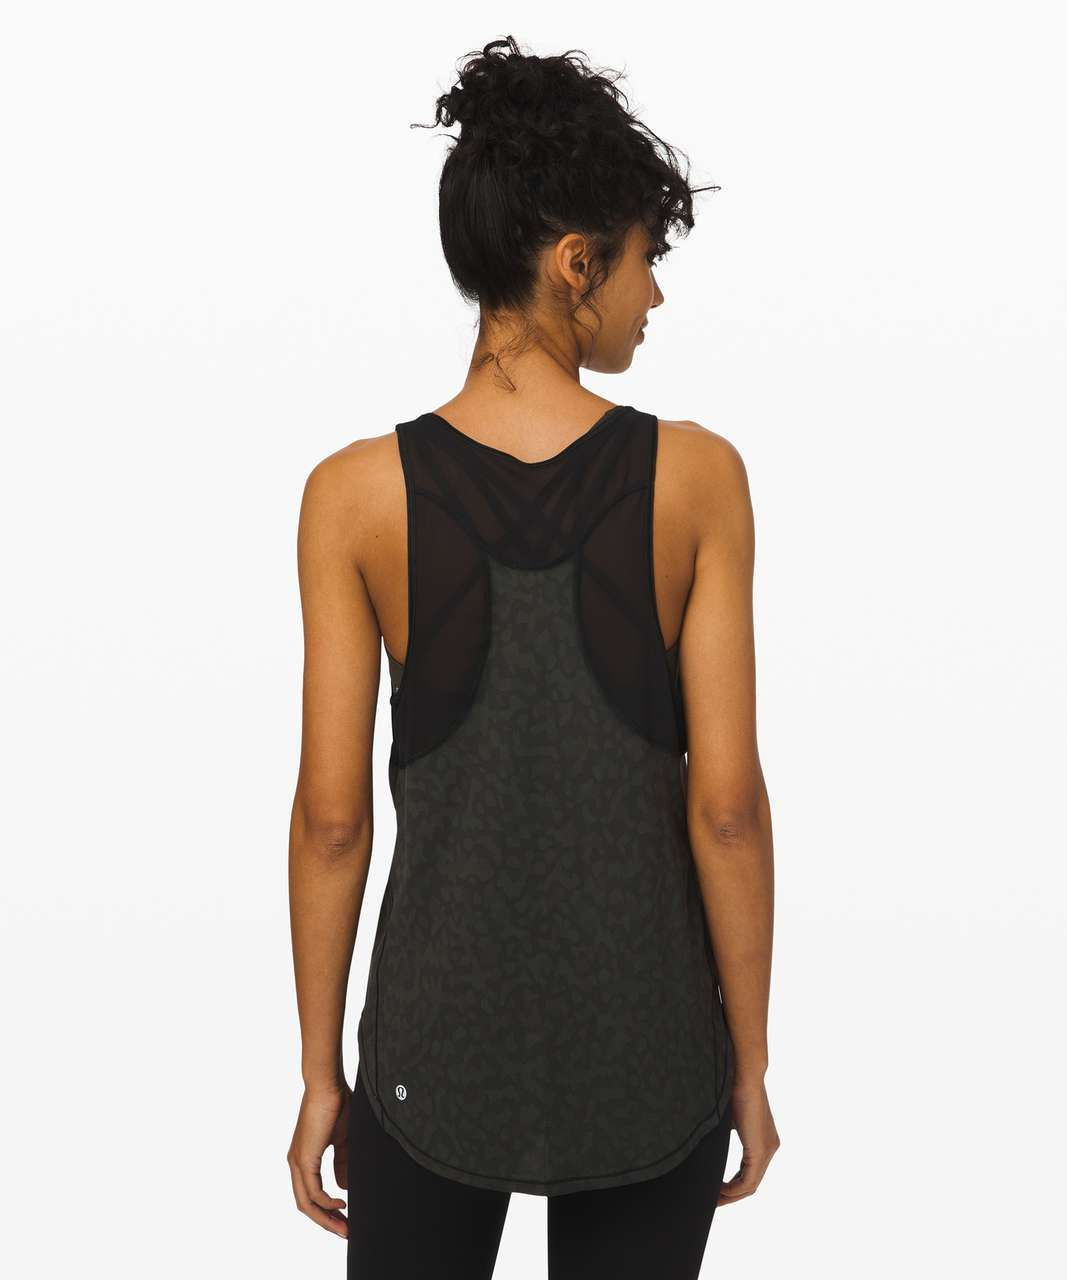 Lululemon Sculpt Tank II - Formation Camo Evergreen Multi  / Black